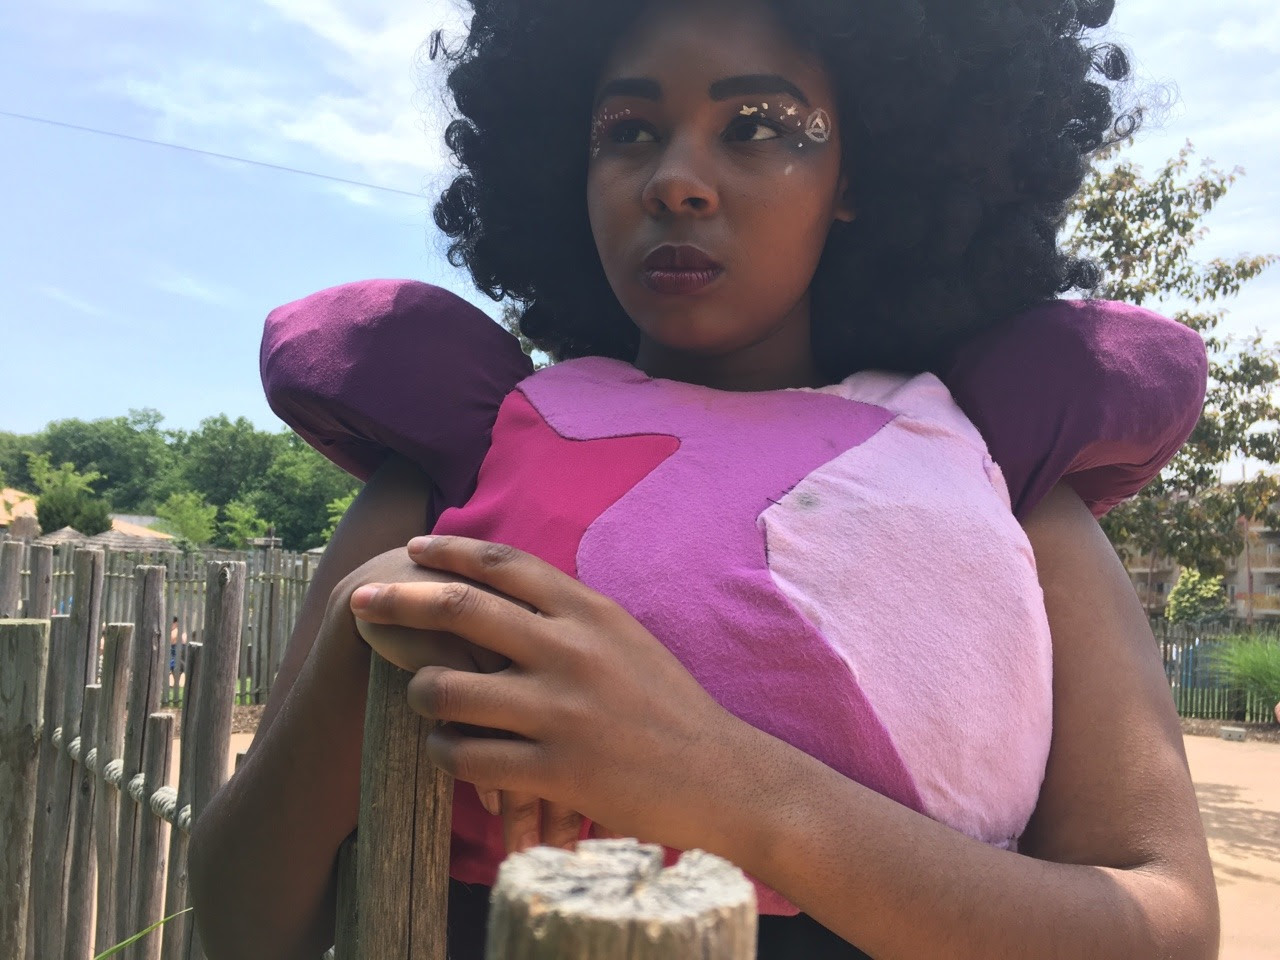 It was absolutely amazing being able to cosplay as Garnet to Colossalcon! I recieved so many compliments and it was refreshing to have the chance to take some new cosplay photos.